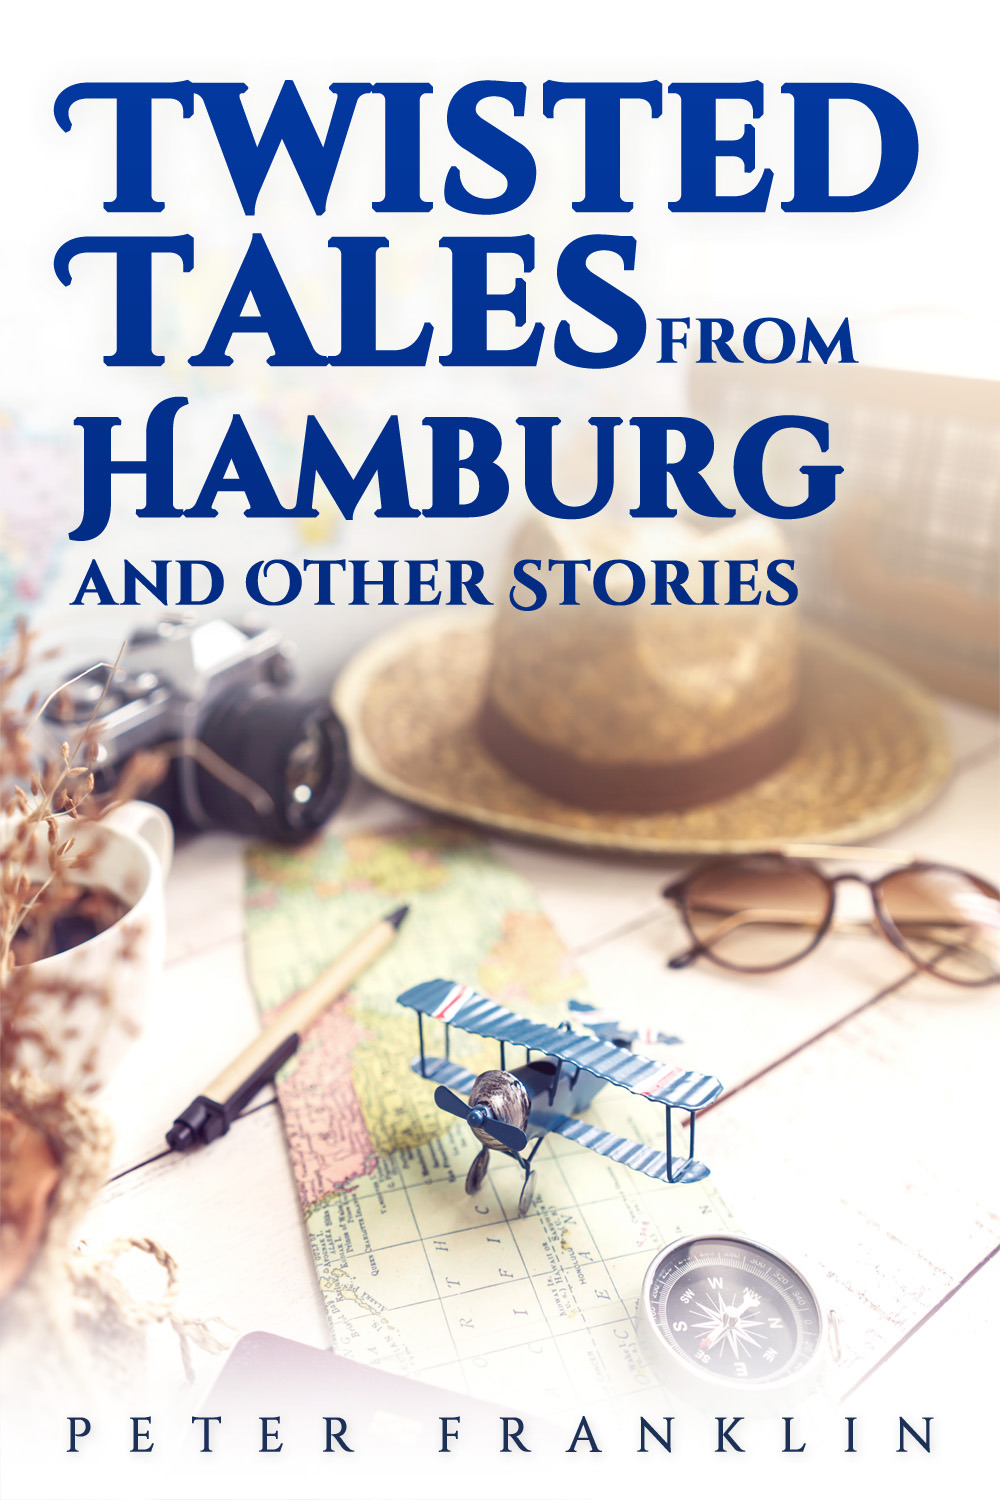 Franklin, Peter - Twisted Tales from Hamburg and Other Stories - Volume 1, e-bok